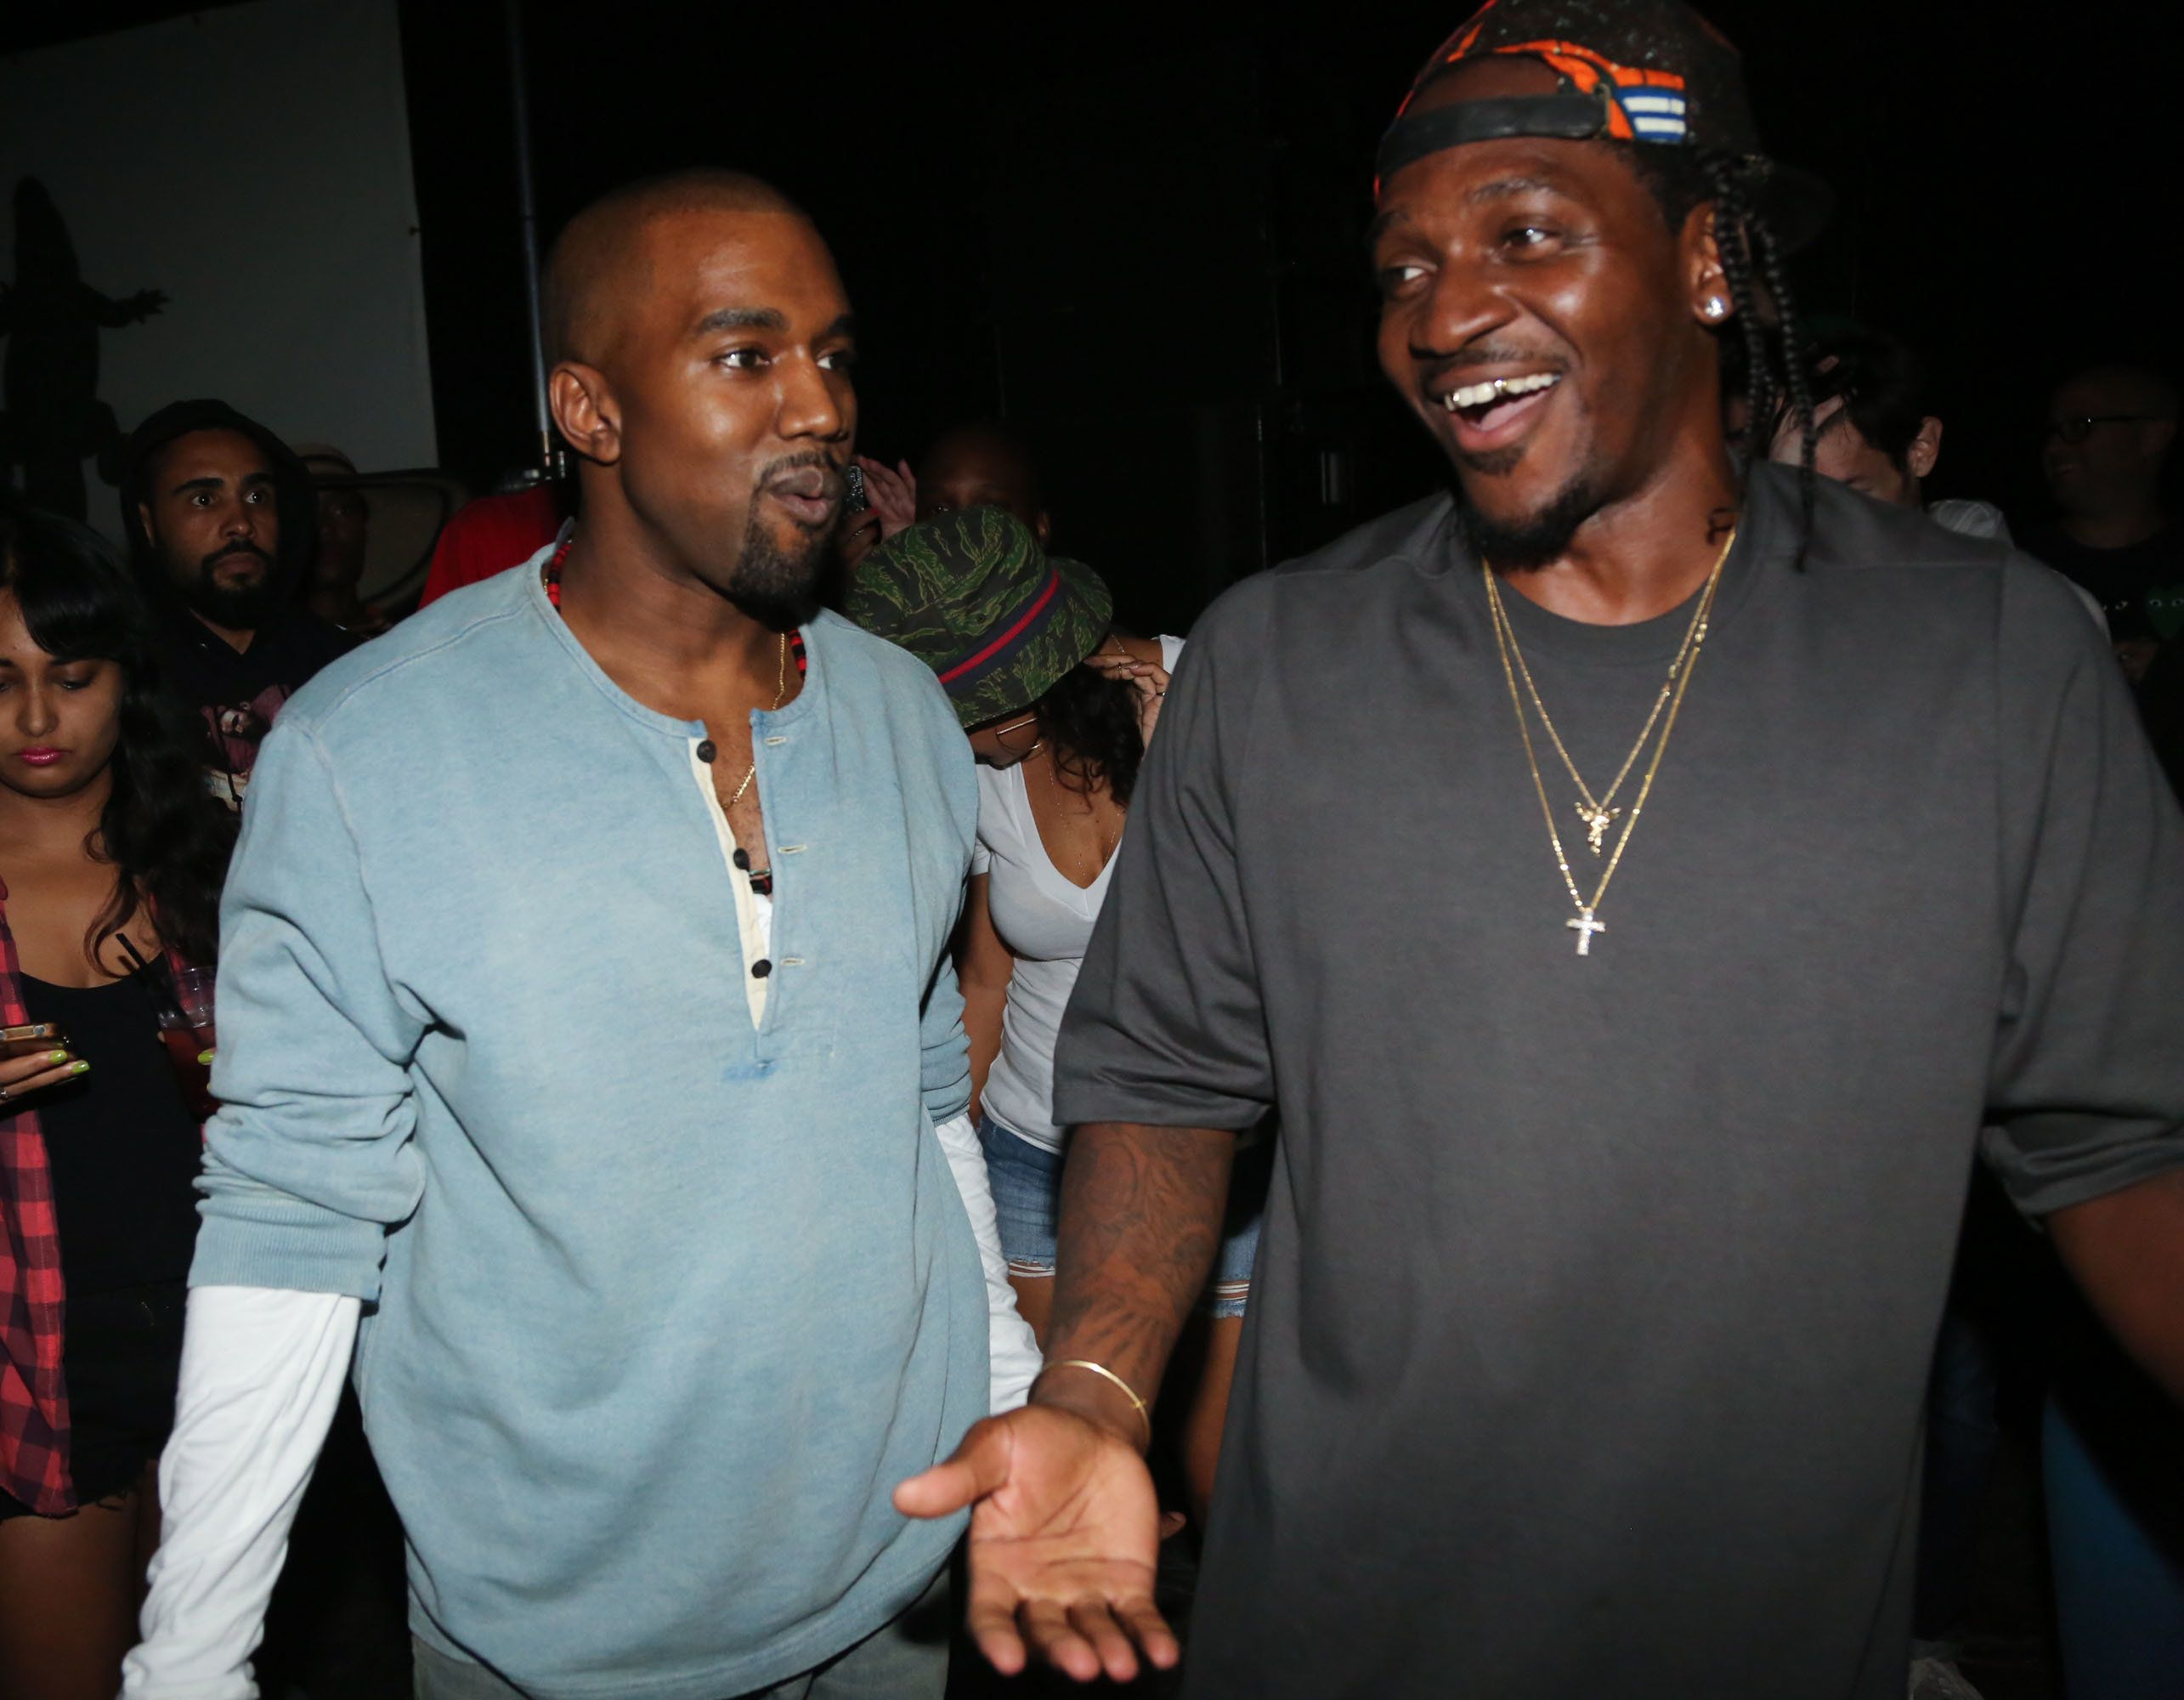 Pusha T Delivers With New Kanye West-Produced Album 'DAYTONA'